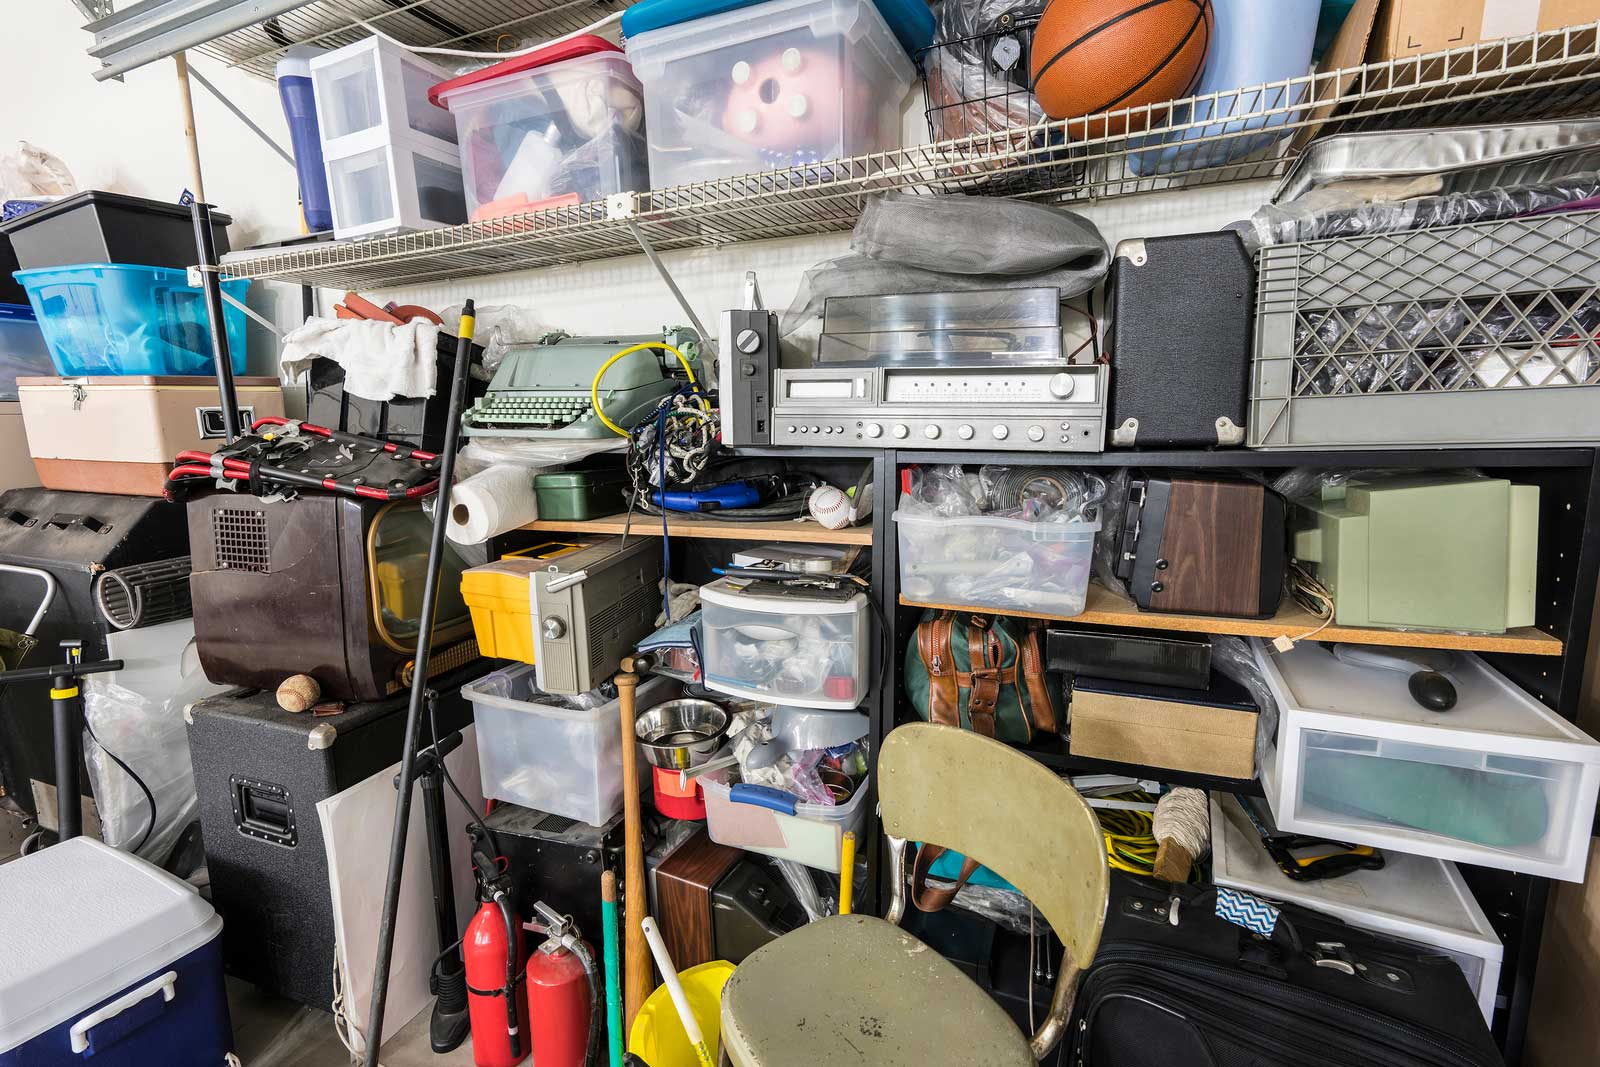 Boxes and sports equipment in a large storage unit.